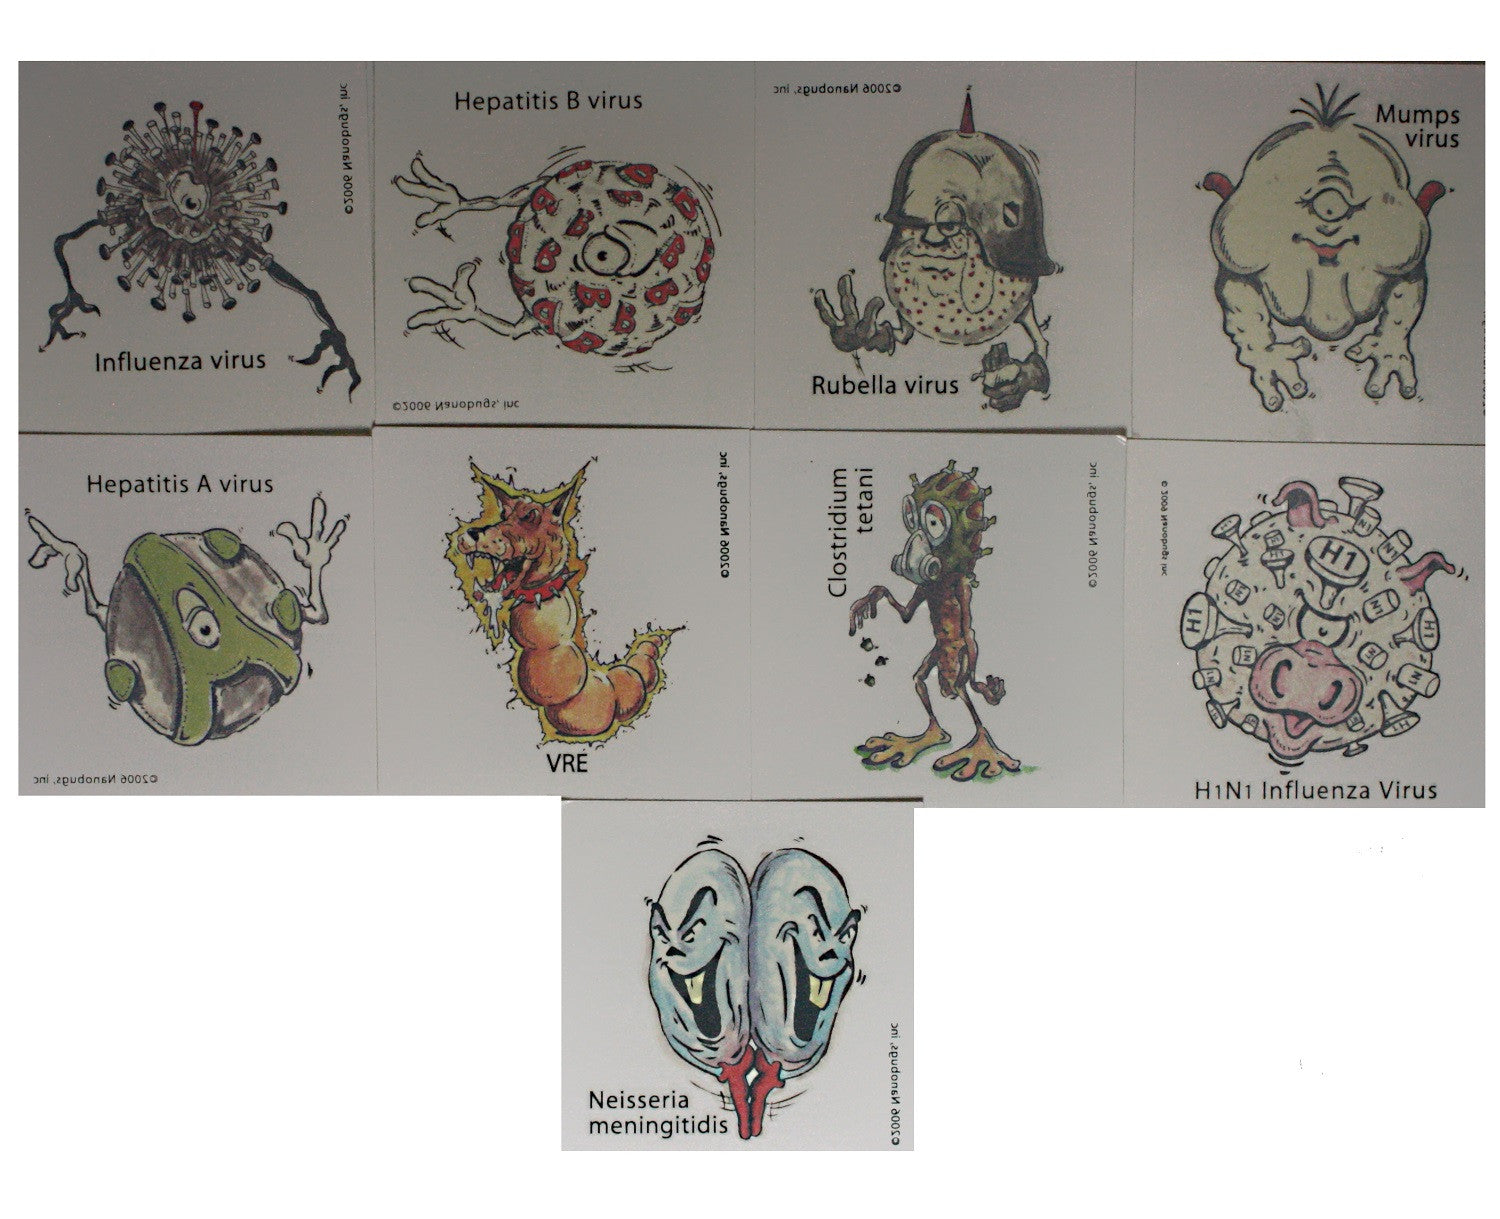 Nanobugs Vaccine Preventable Temporary Tattoos Set C-30 - Off The Wall Toys and Gifts